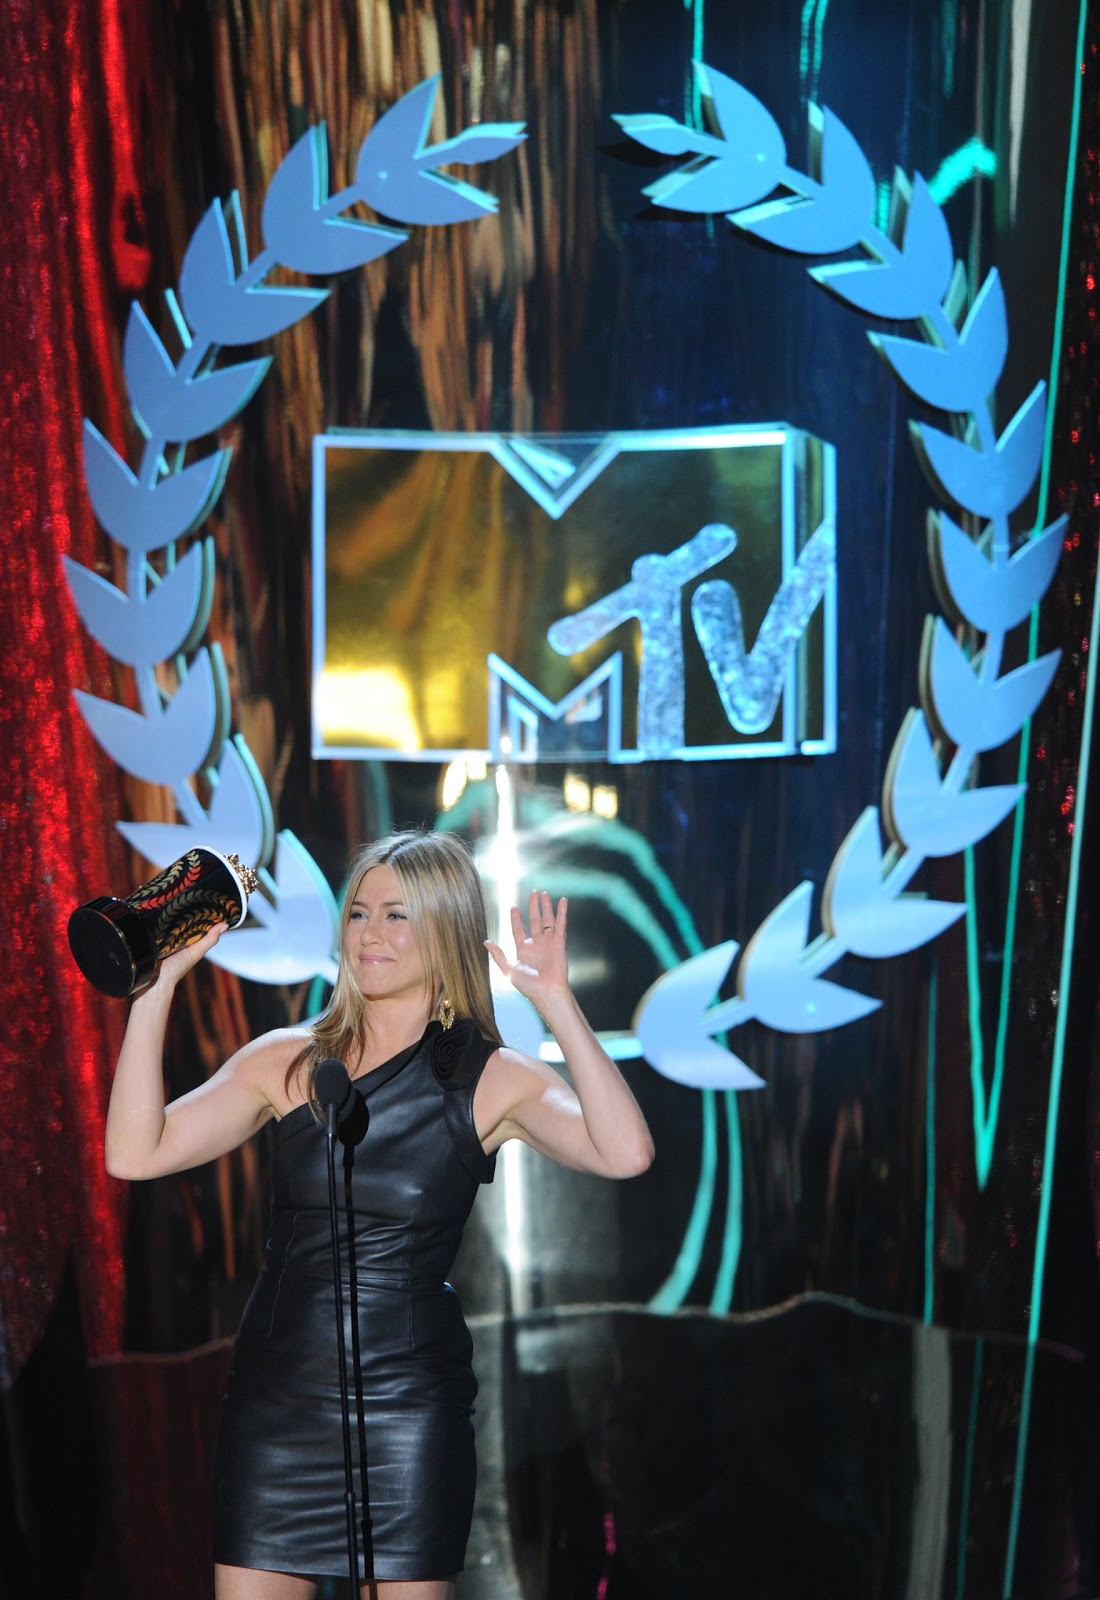 http://2.bp.blogspot.com/-plukn5ZM40g/T8yBlej-AcI/AAAAAAAAPf0/X9rdm4RBXW4/s1600/Jennifer+Aniston+at+the+2012+MTV+Movie+Awards.jpg